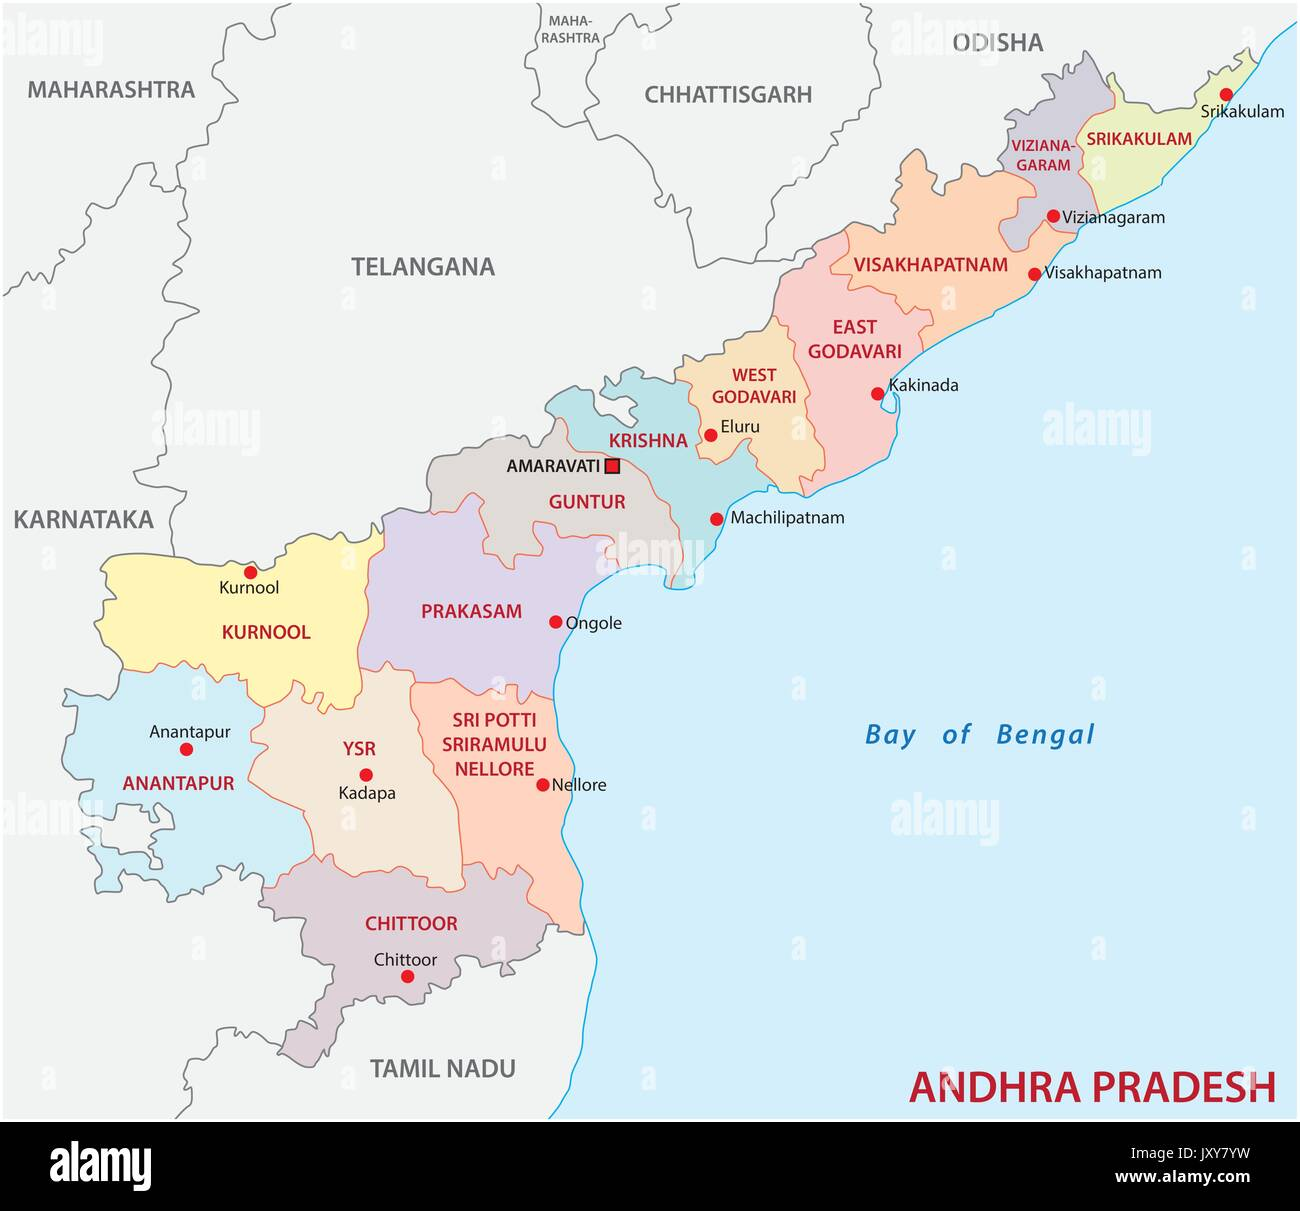 Karnataka Map Stock Photos & Karnataka Map Stock Images - Alamy